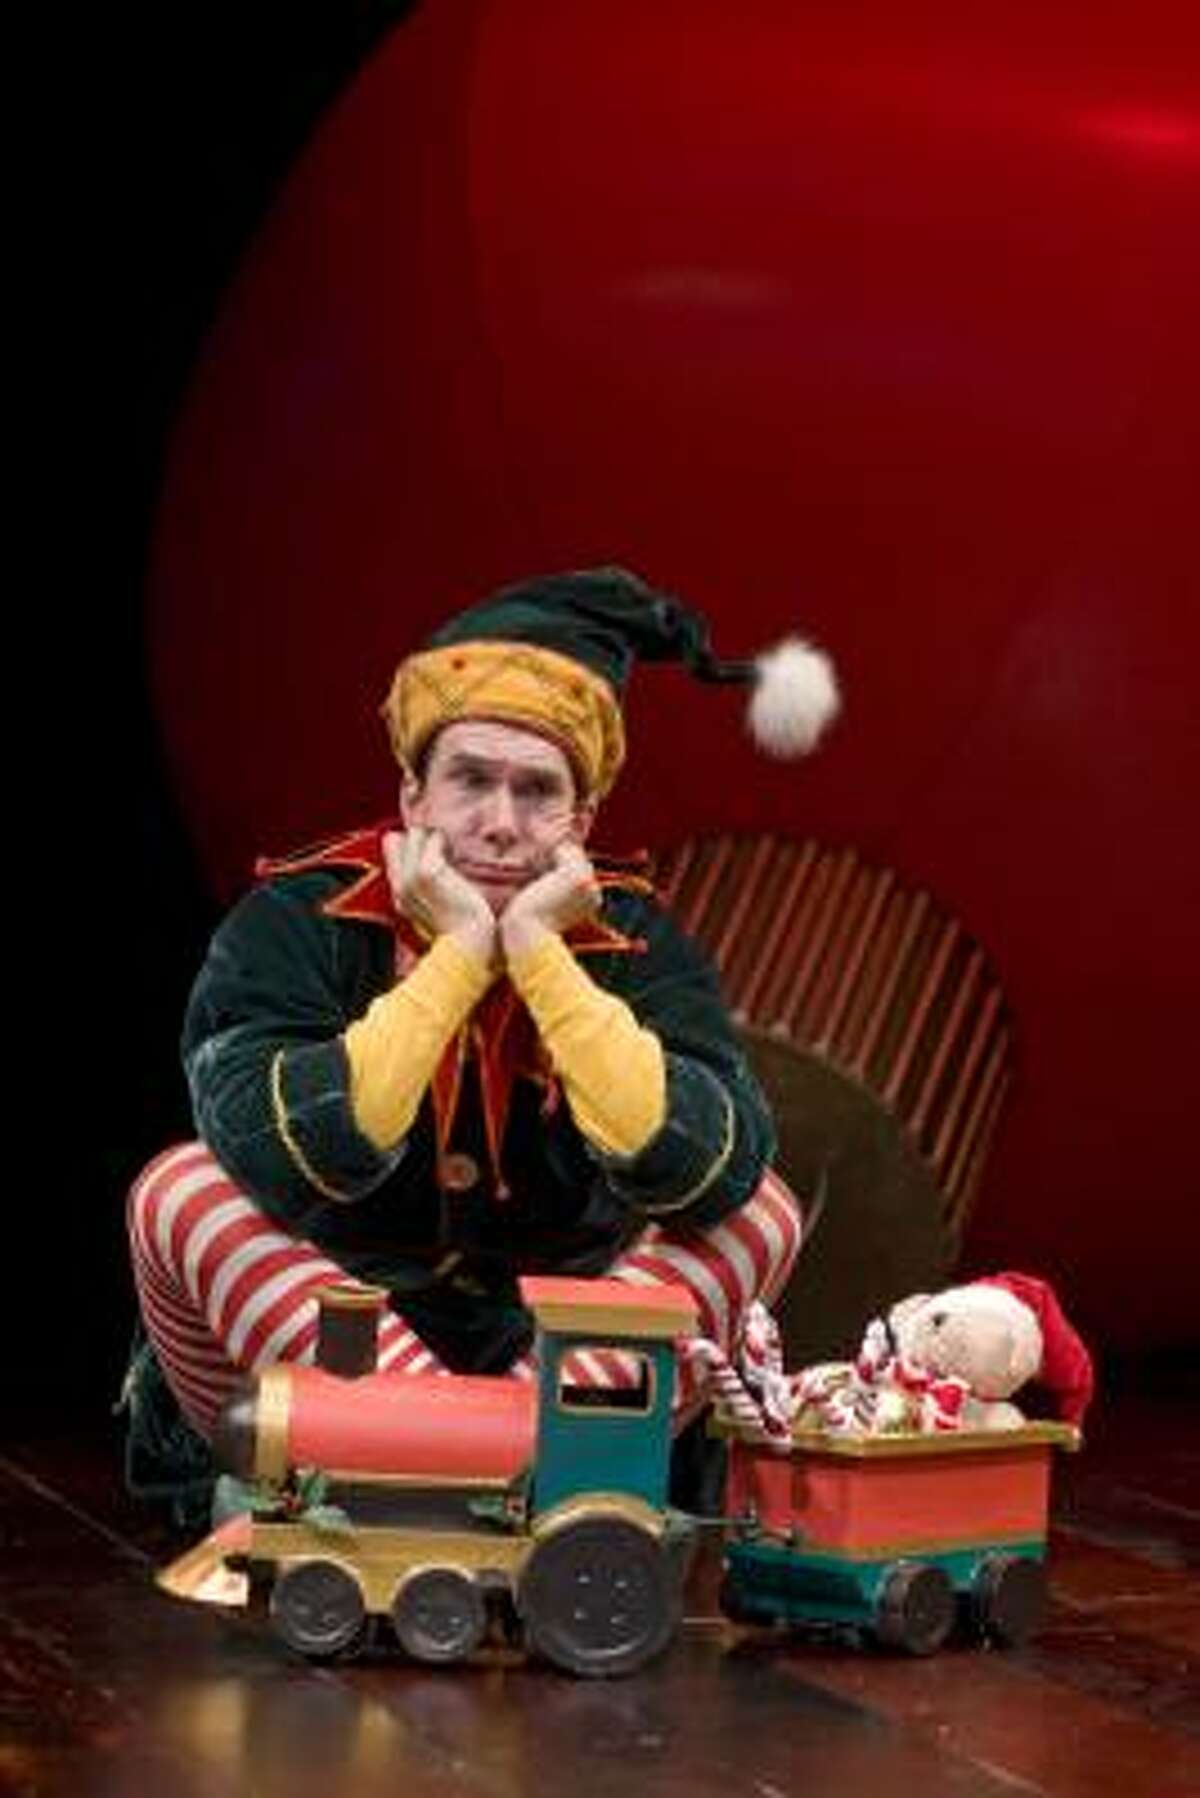 Todd Waite says playing Crumpet the disgruntled elf in The Santaland Diaries is always fun because the show provides a different view of the holiday experience to which the audience can relate.